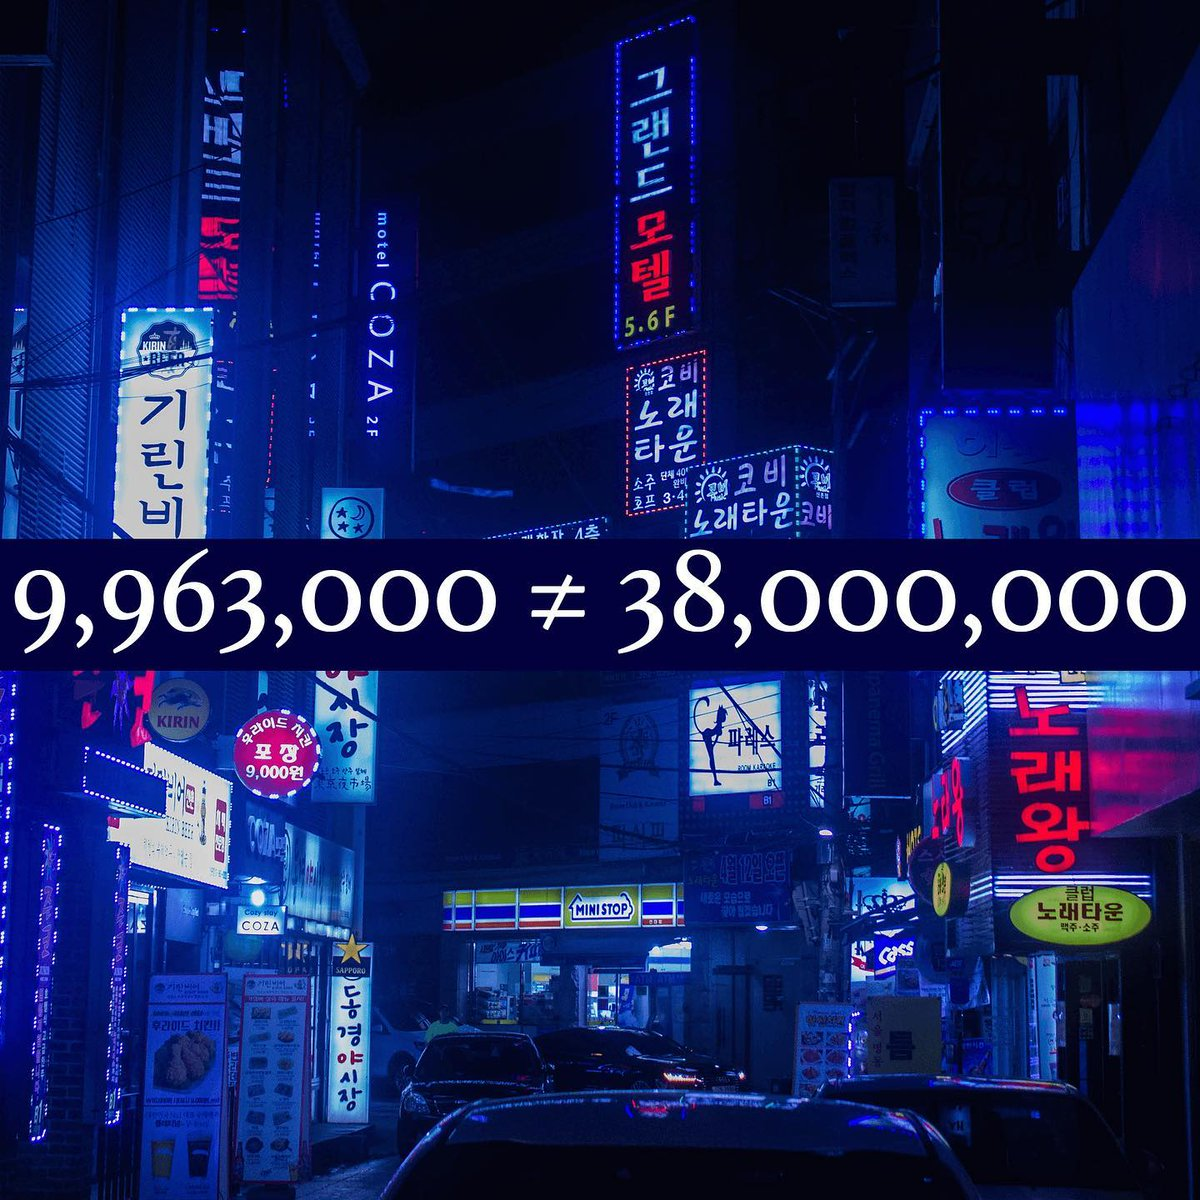 Thing I learned today: 9,963,000 ≠ 38,000,000 #coronavirus #seoul pic.twitter.com/SlnkDx4fZC